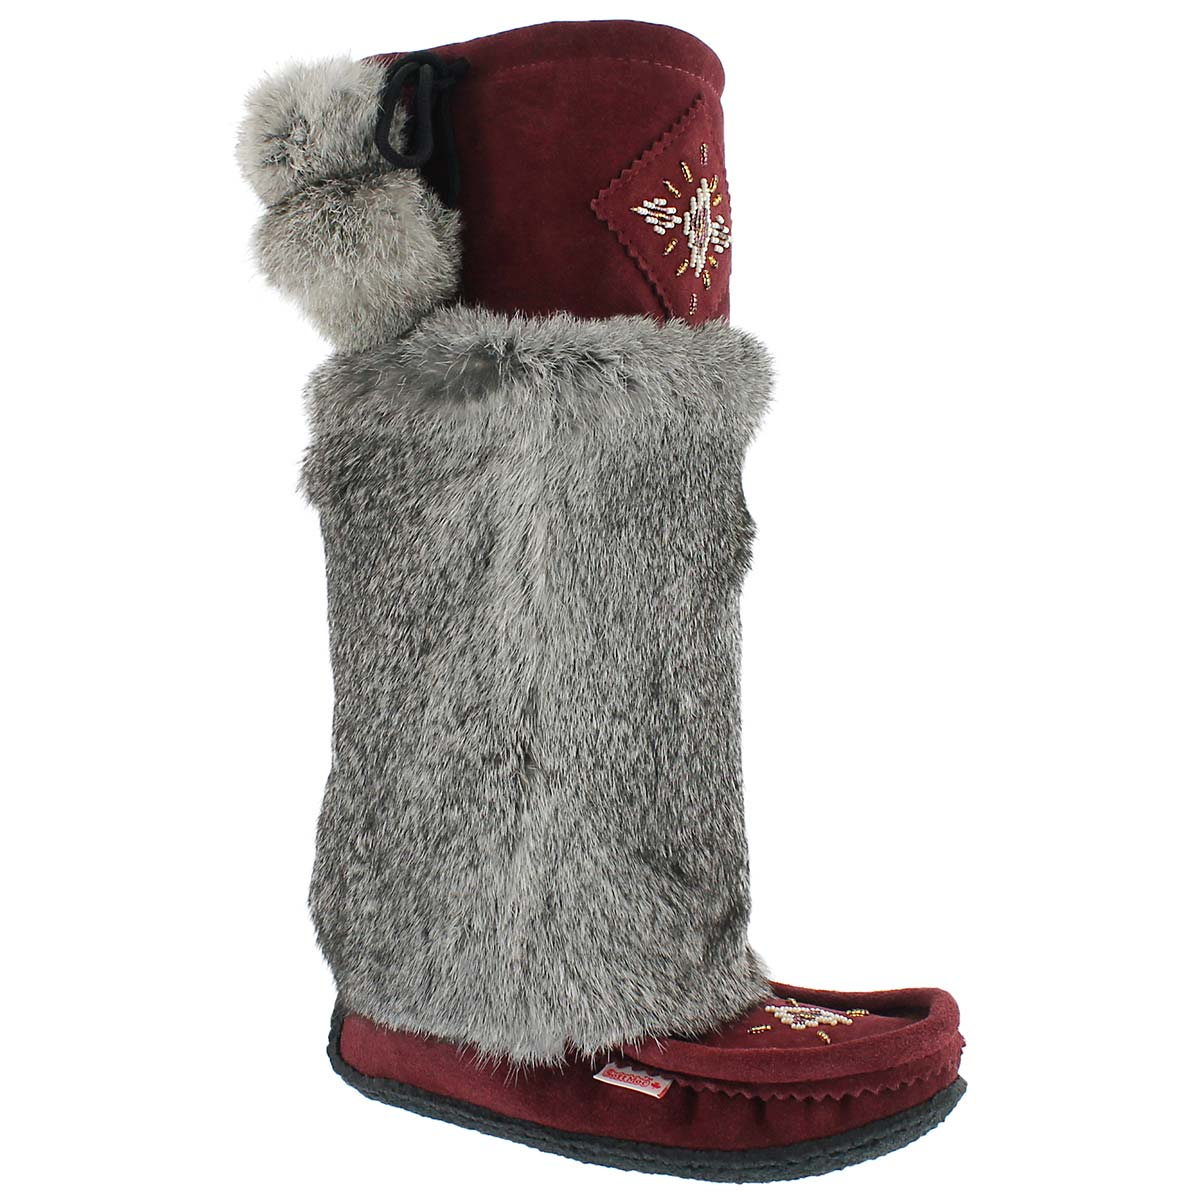 "Women's burgundy/grey rabbit fur 16"" mukluks"